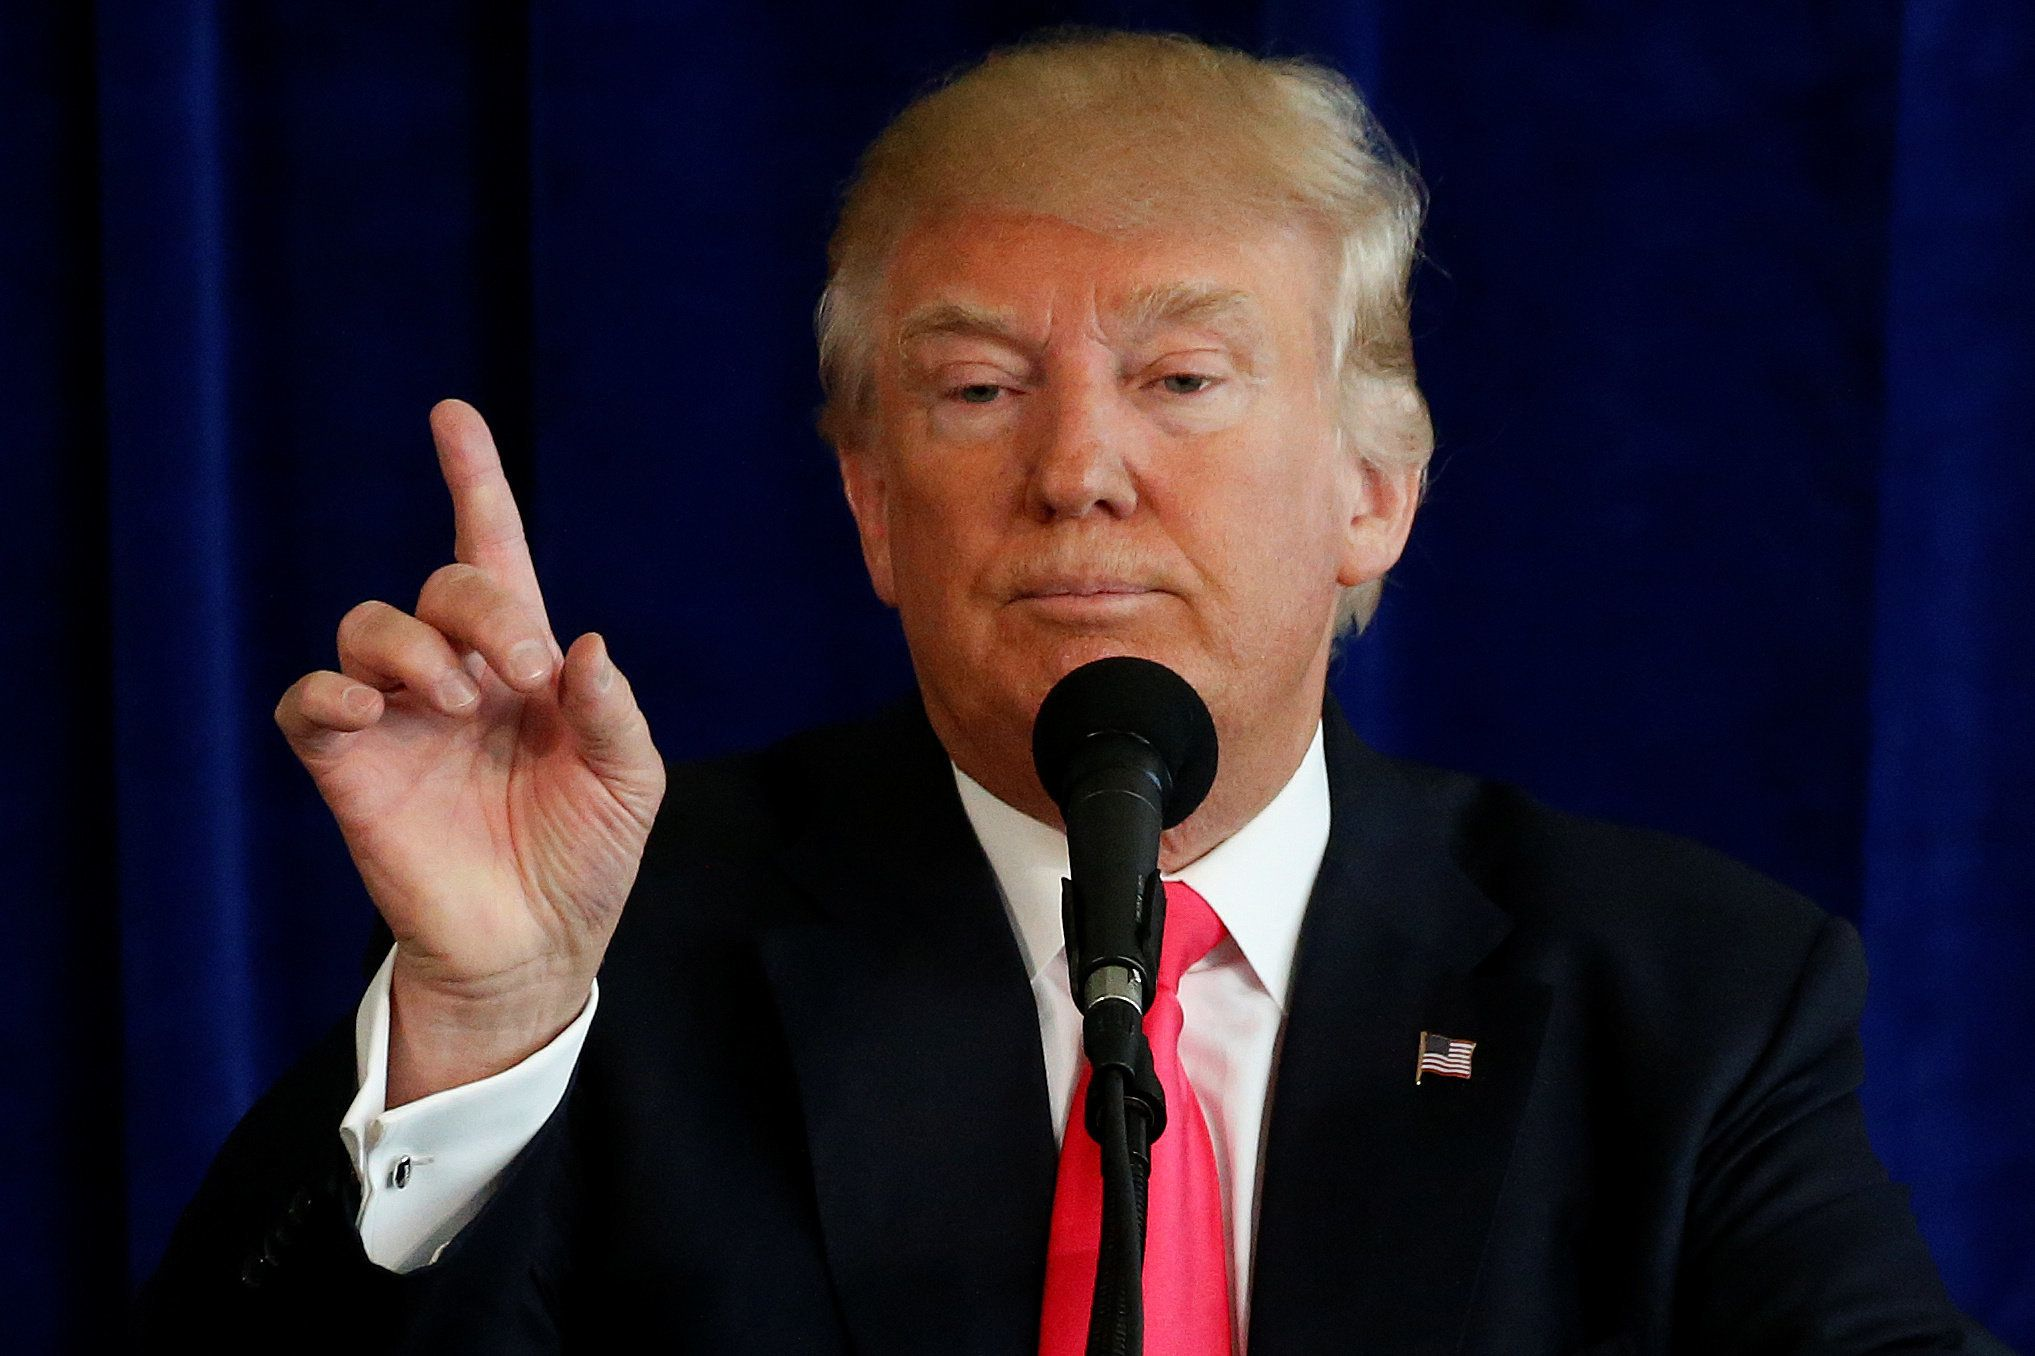 GOP presidential nominee Donald Trump is repeating rhetoric Russia has used against the U.S.